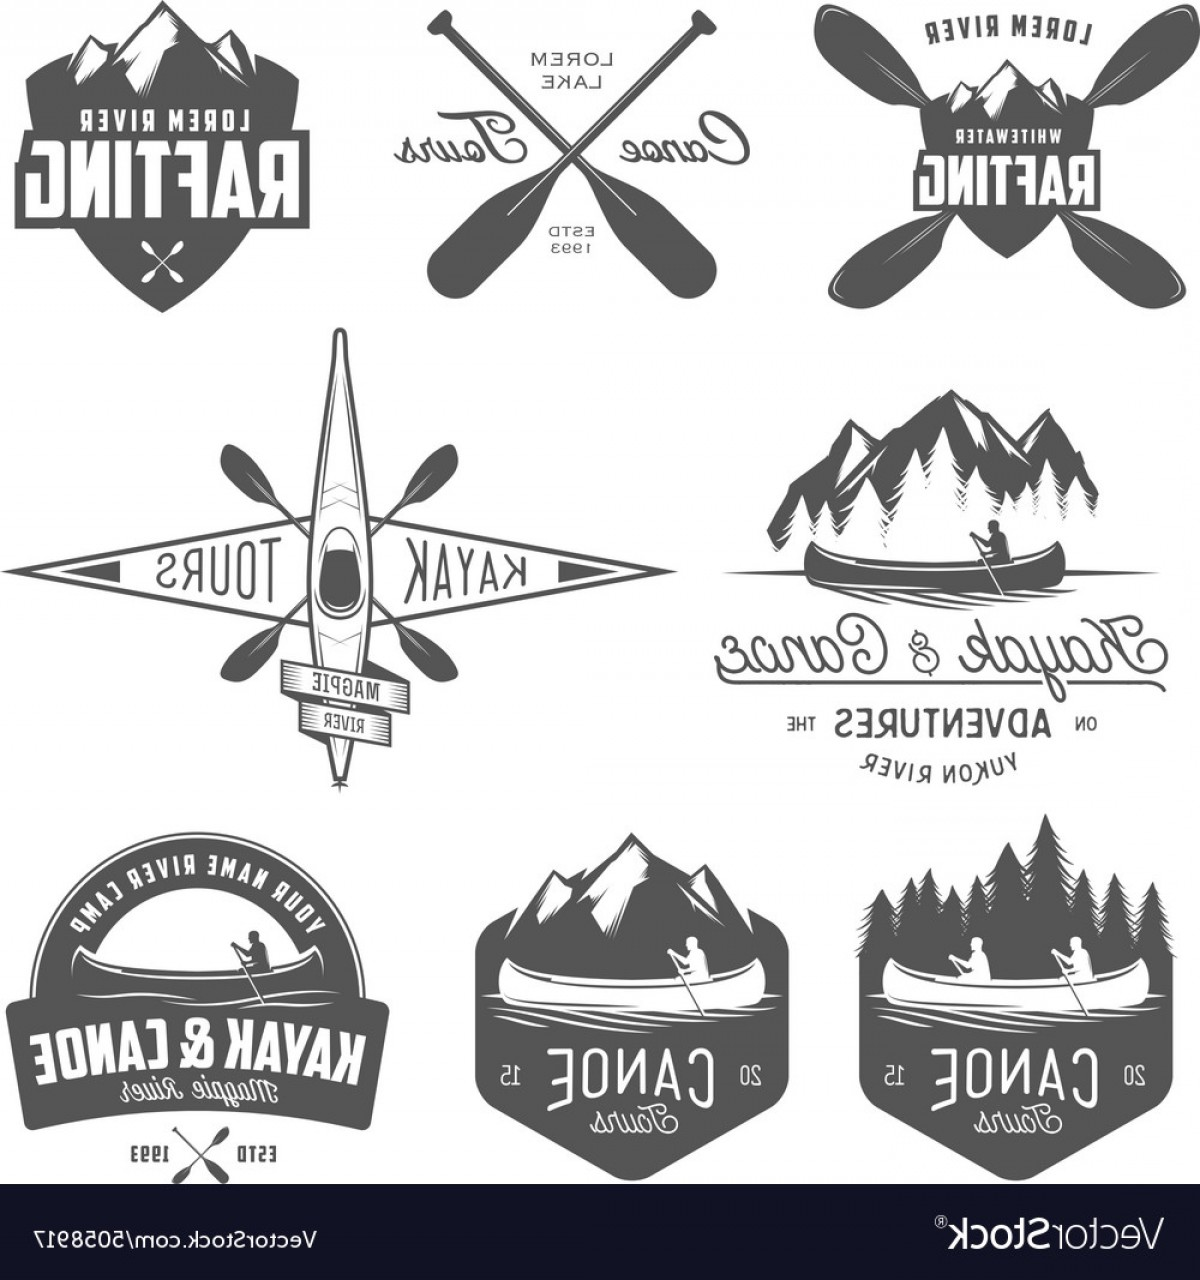 Canoe Vector: Set Of Kayak And Canoe Design Elements Vector